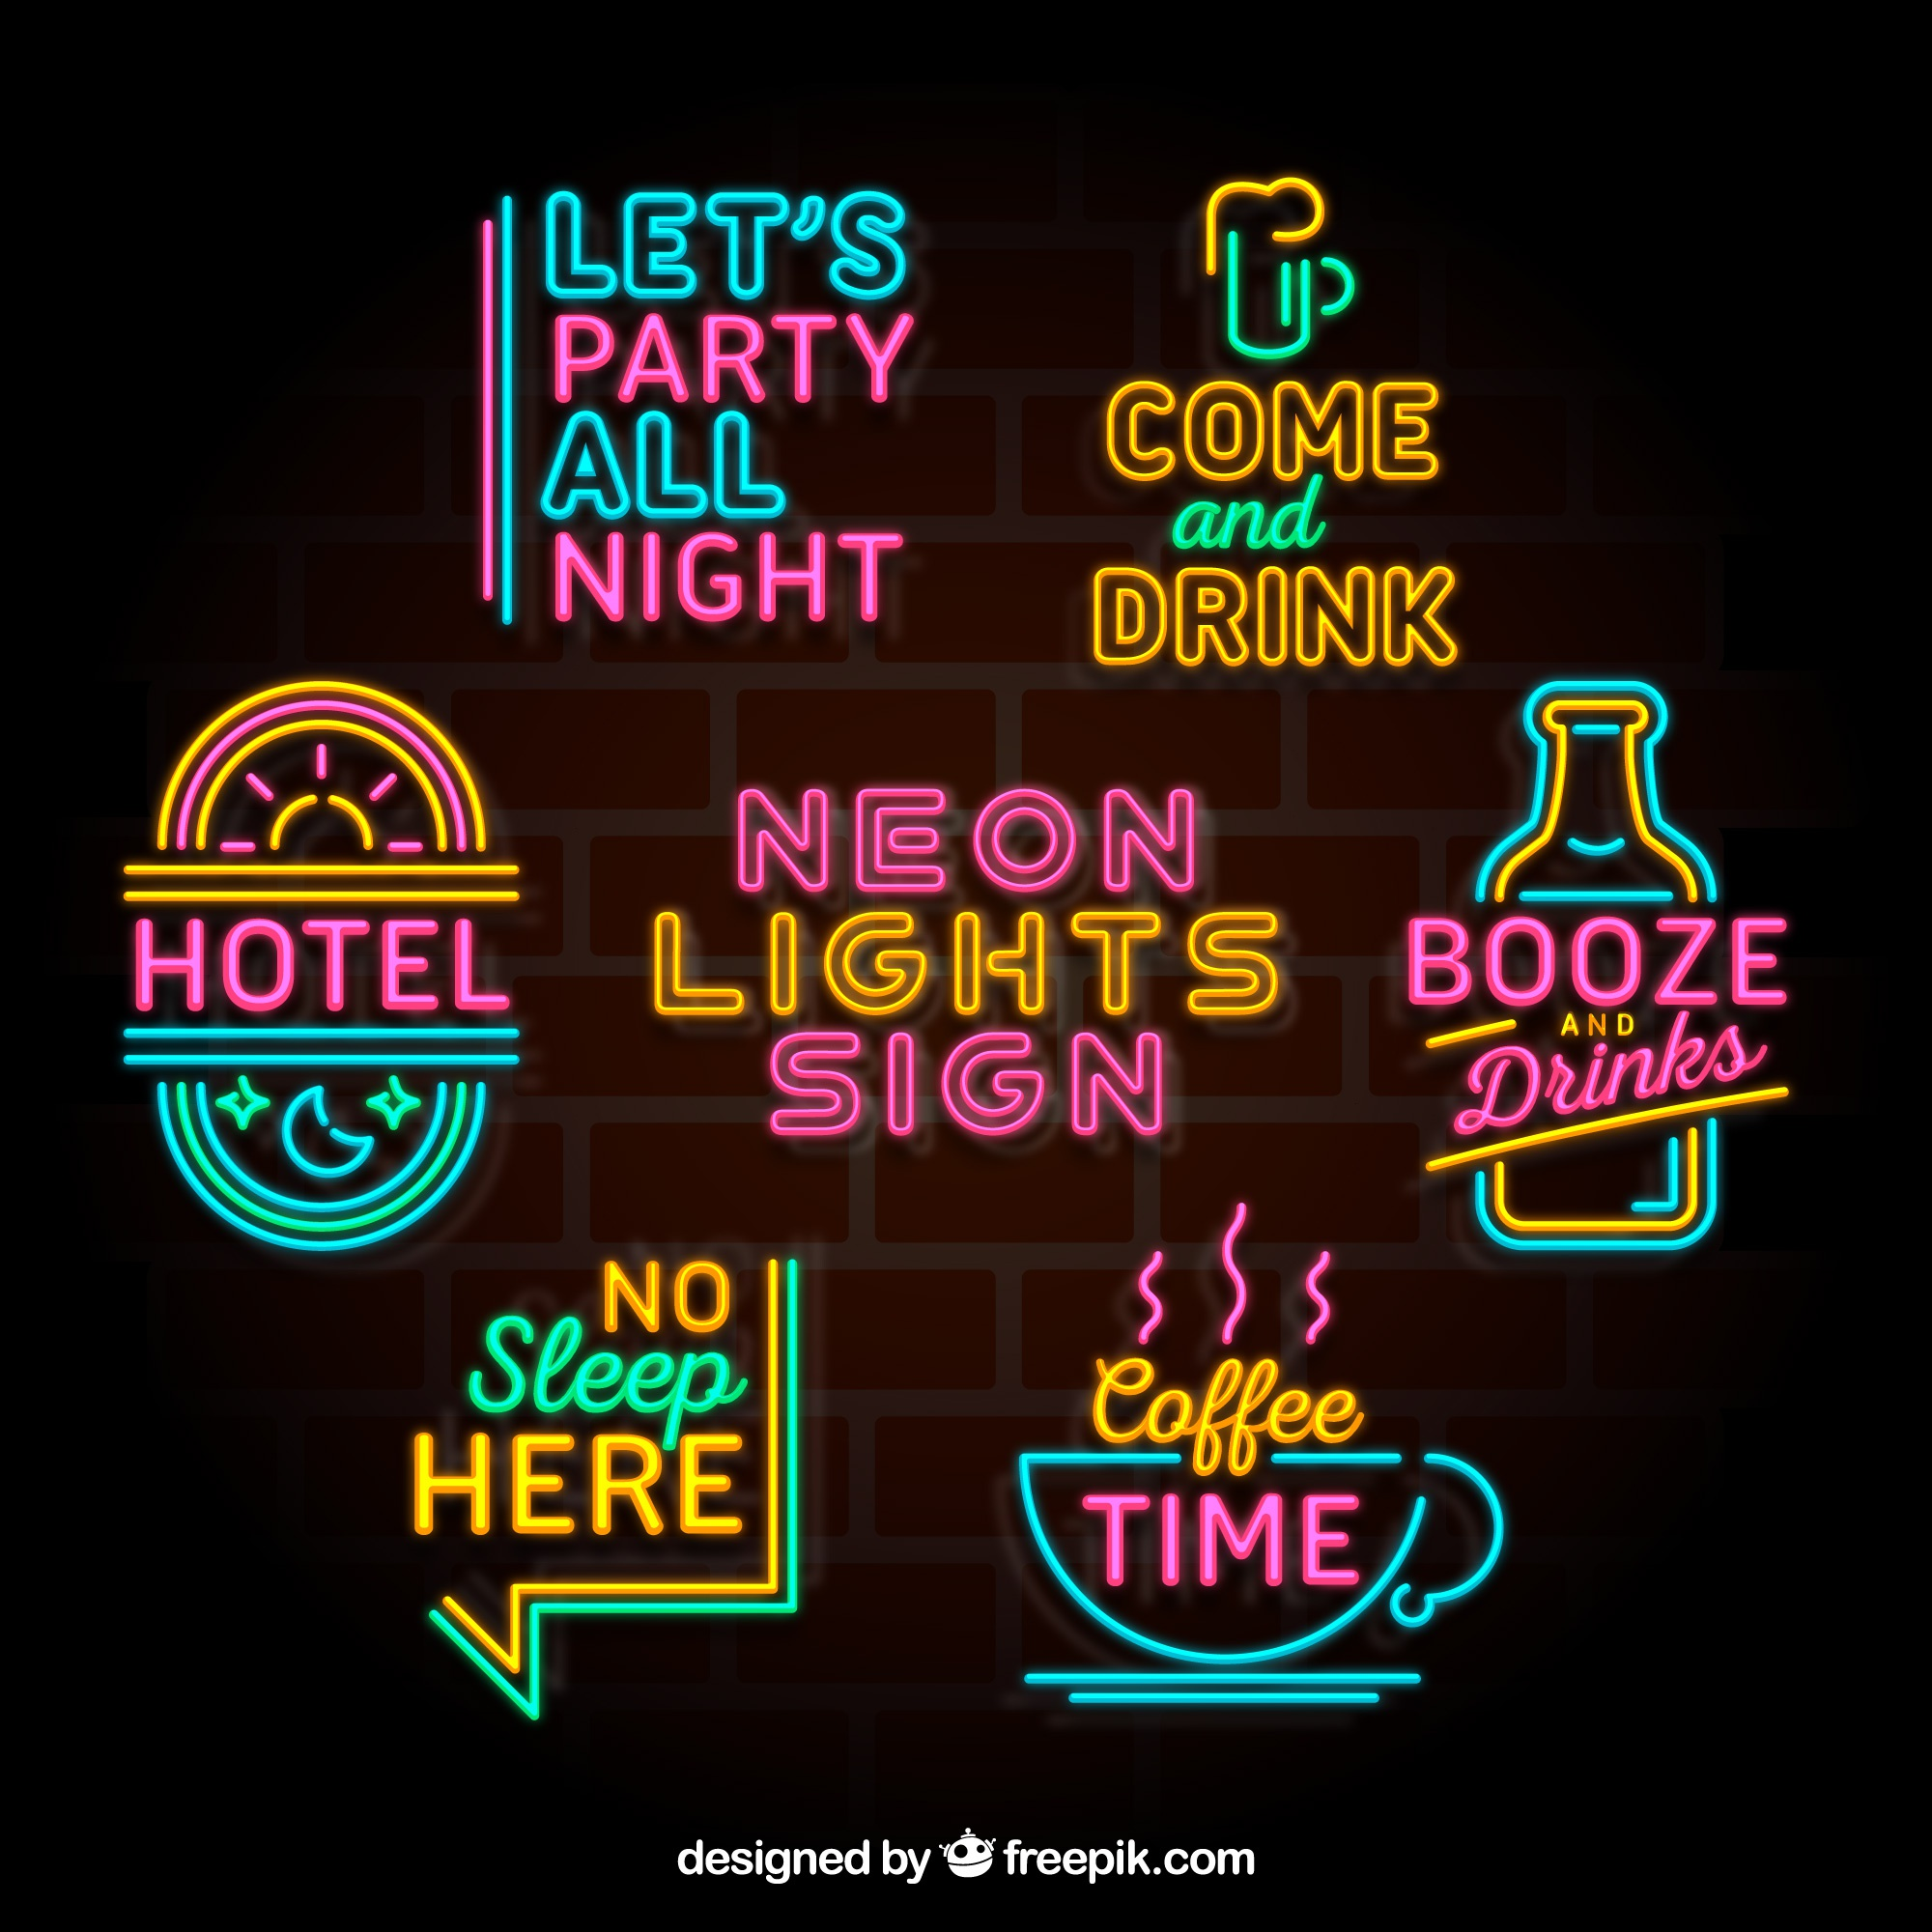 Awesome collection of colorful neon light placards